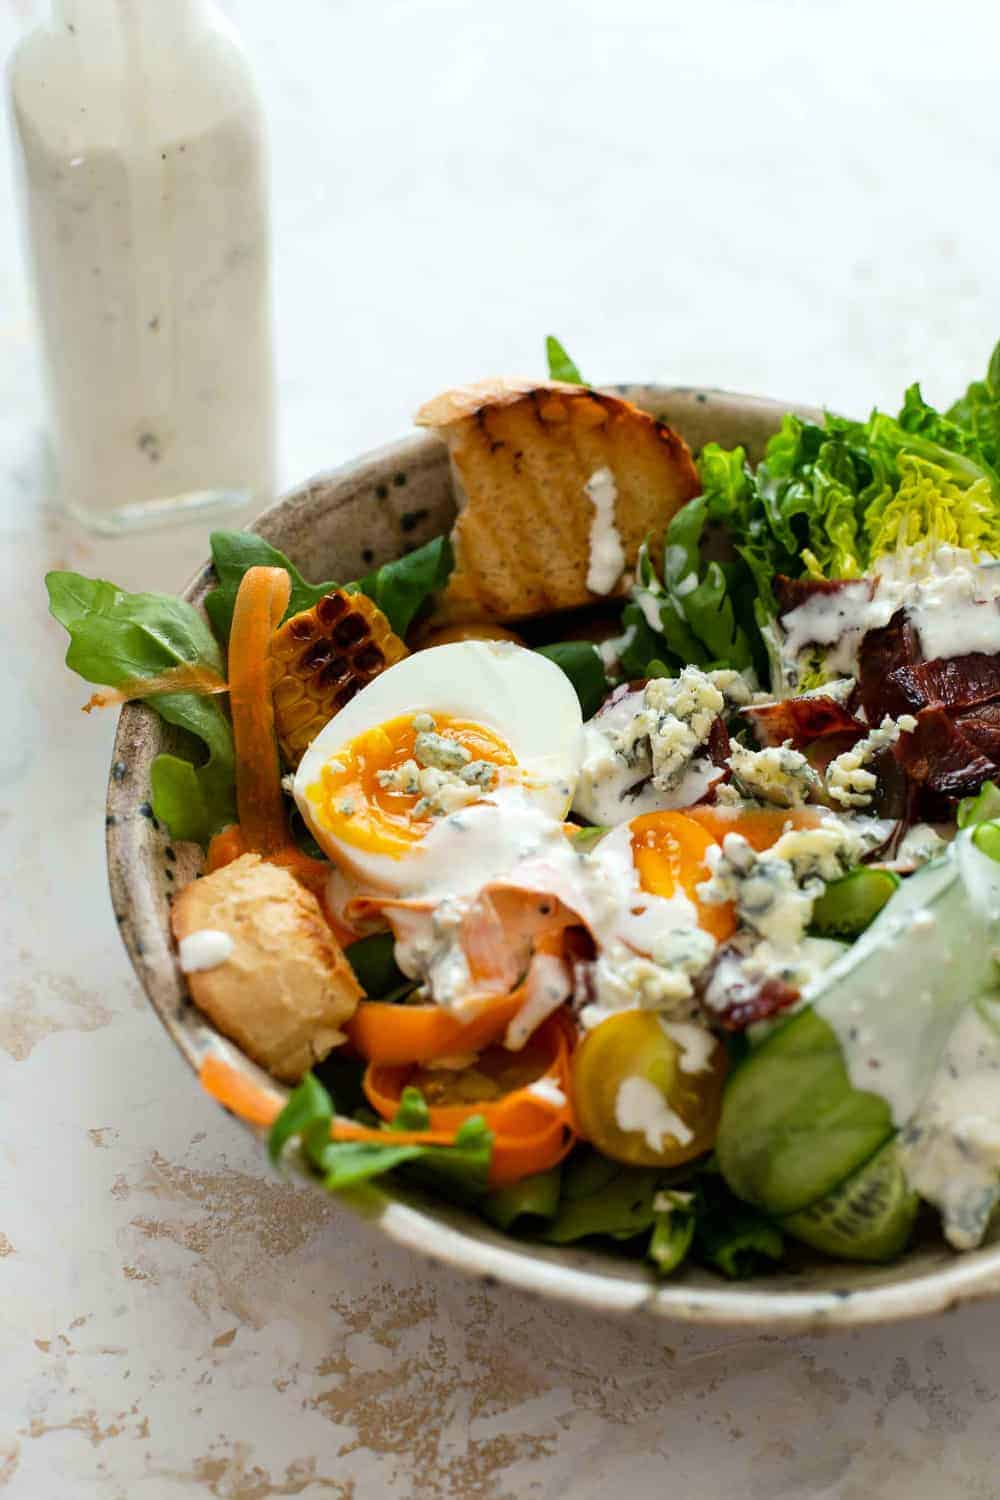 Summer salad dressed with homemade blue cheese dressing next to a bottle of blue cheese dressing